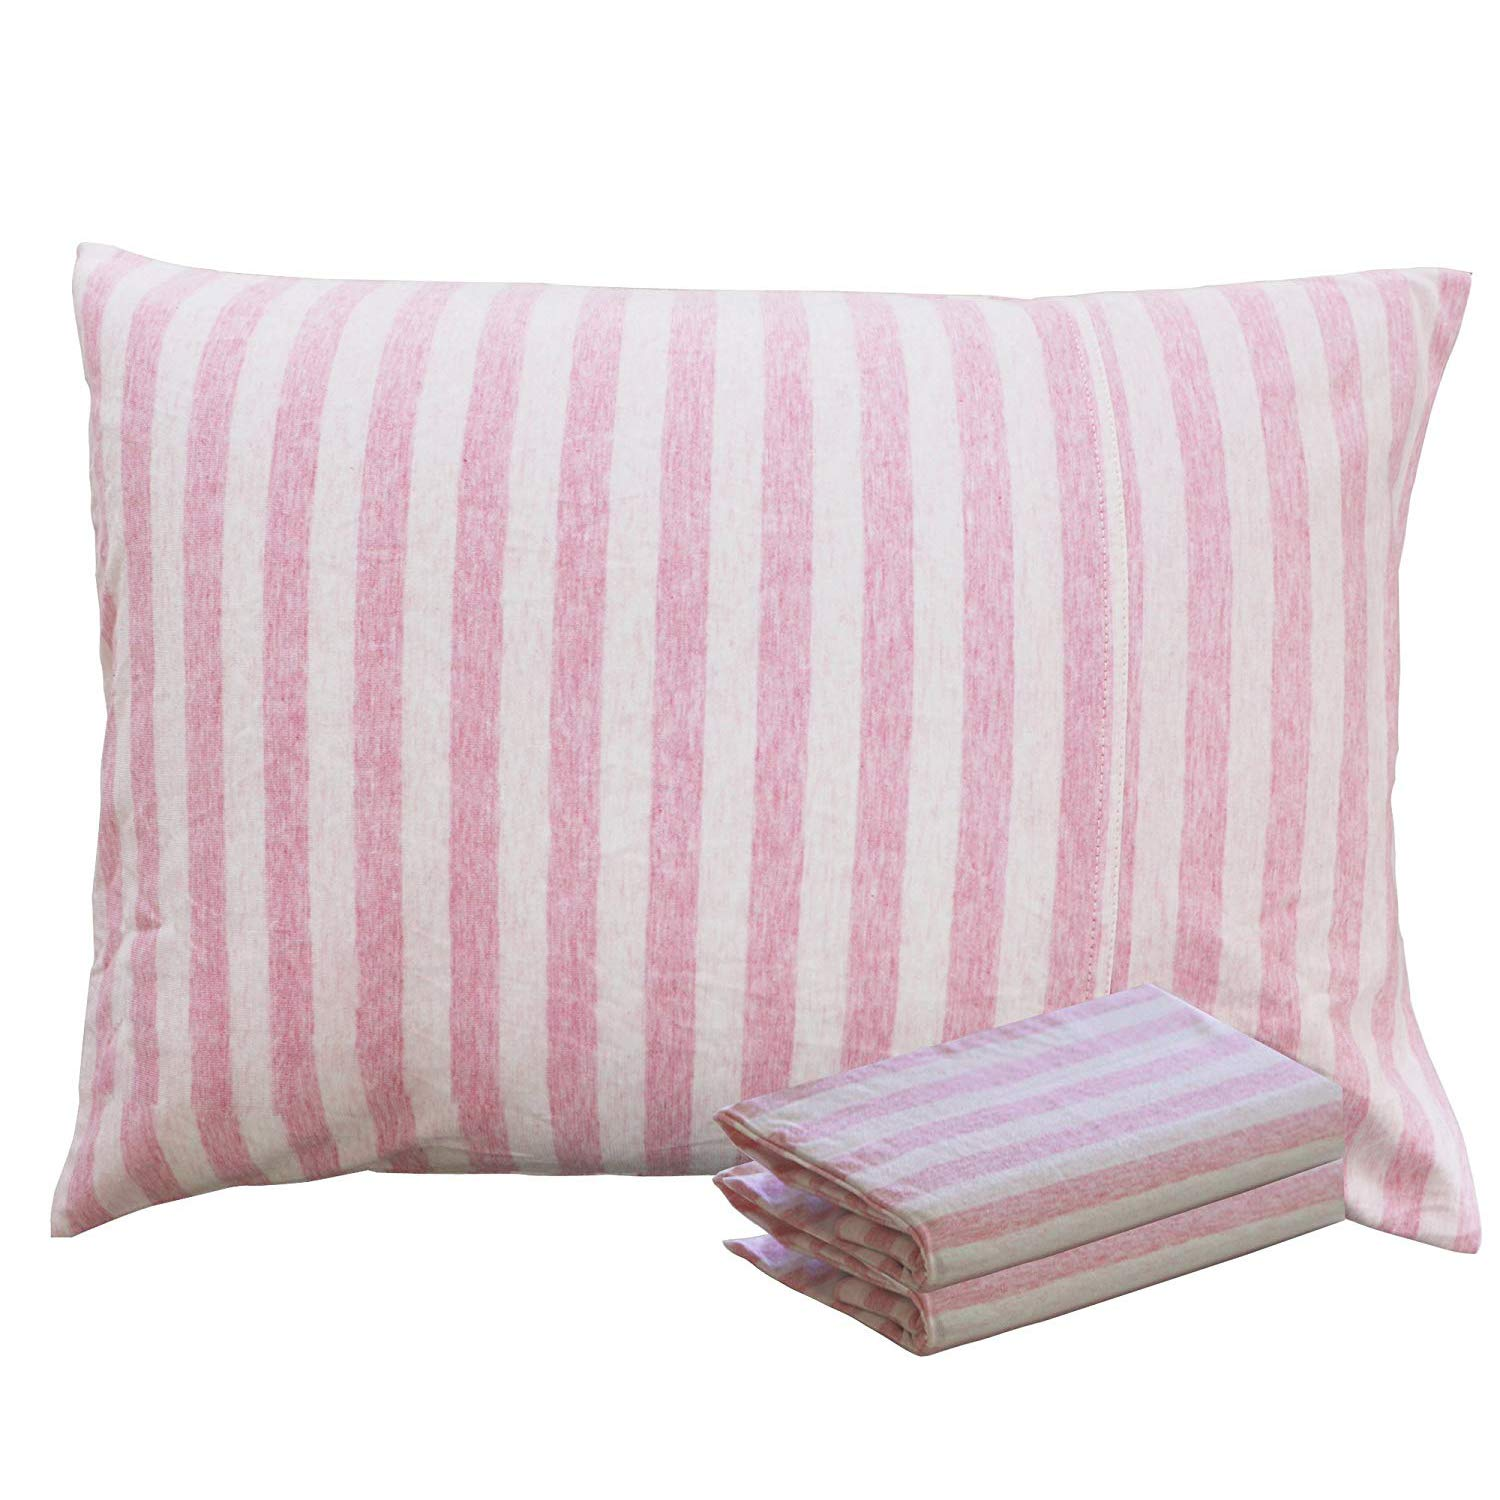 NTBAY 100% Organic Cotton Toddler Pillowcases Set of 2, Soft and Breathable, 13''x 18'', Pink